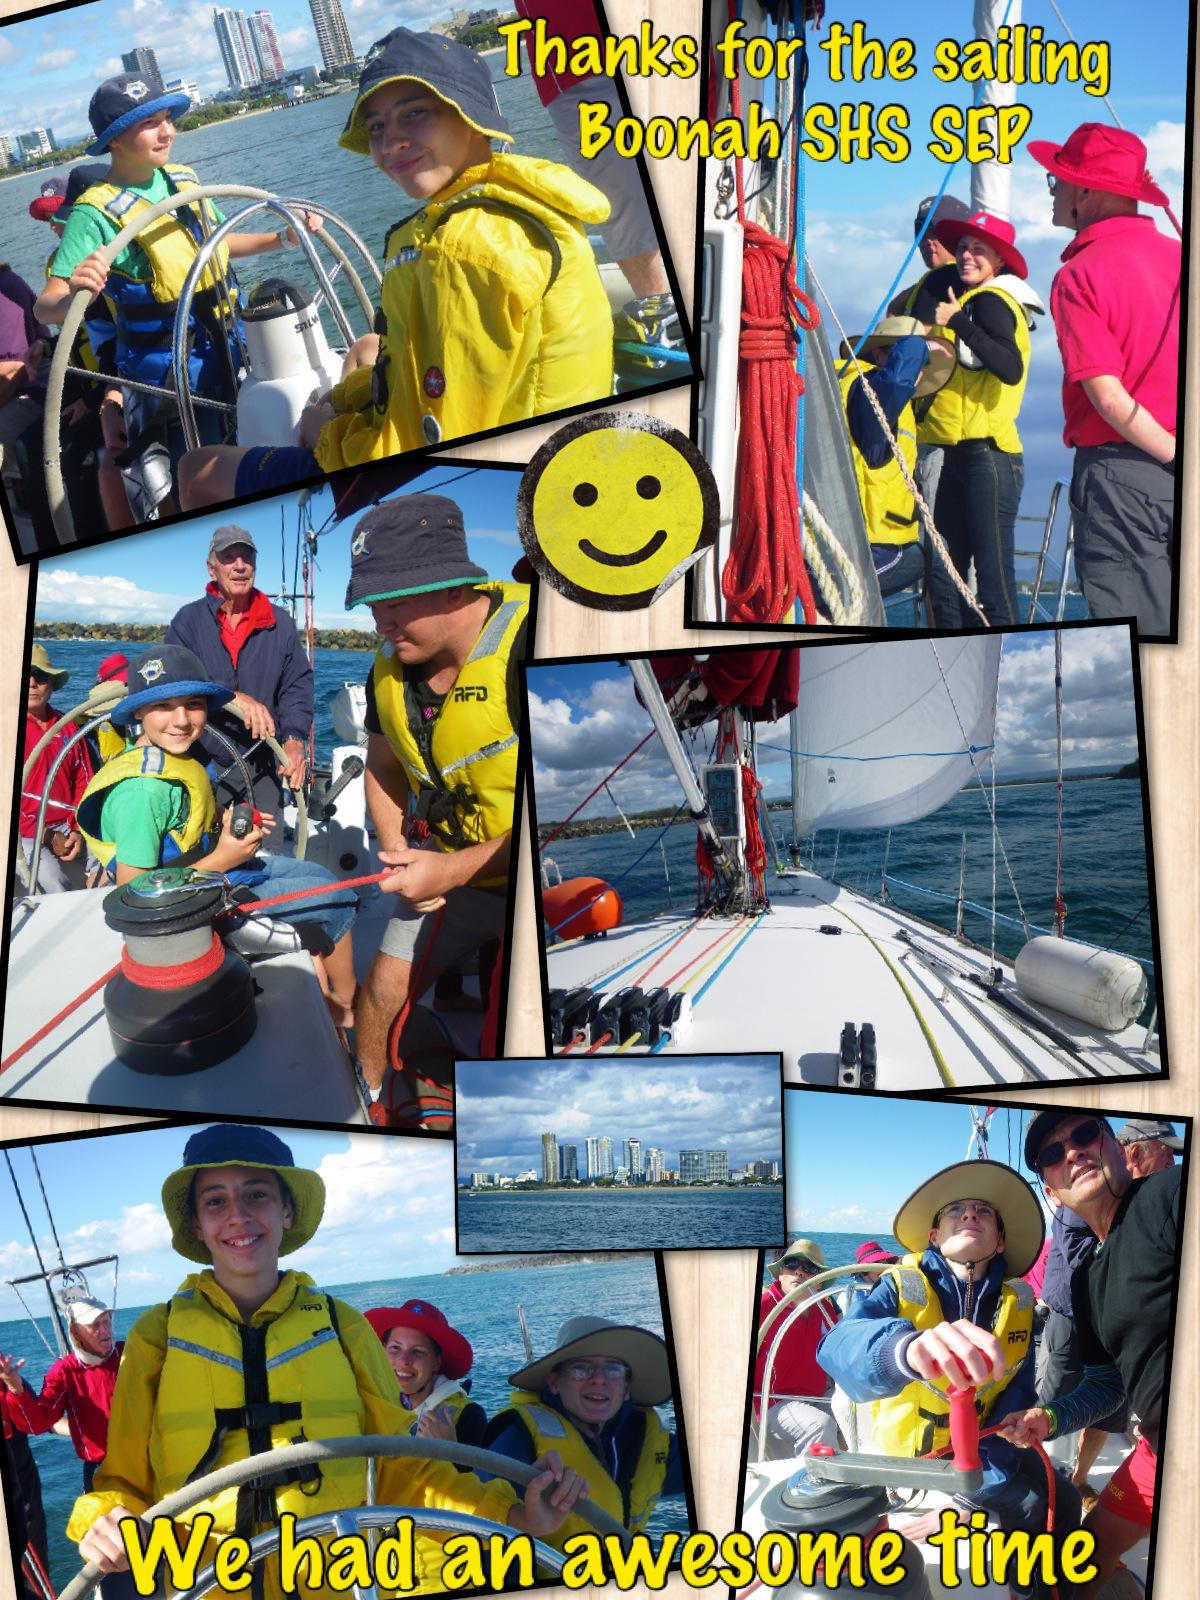 Thanks for the sailing Boonah SHS SEP